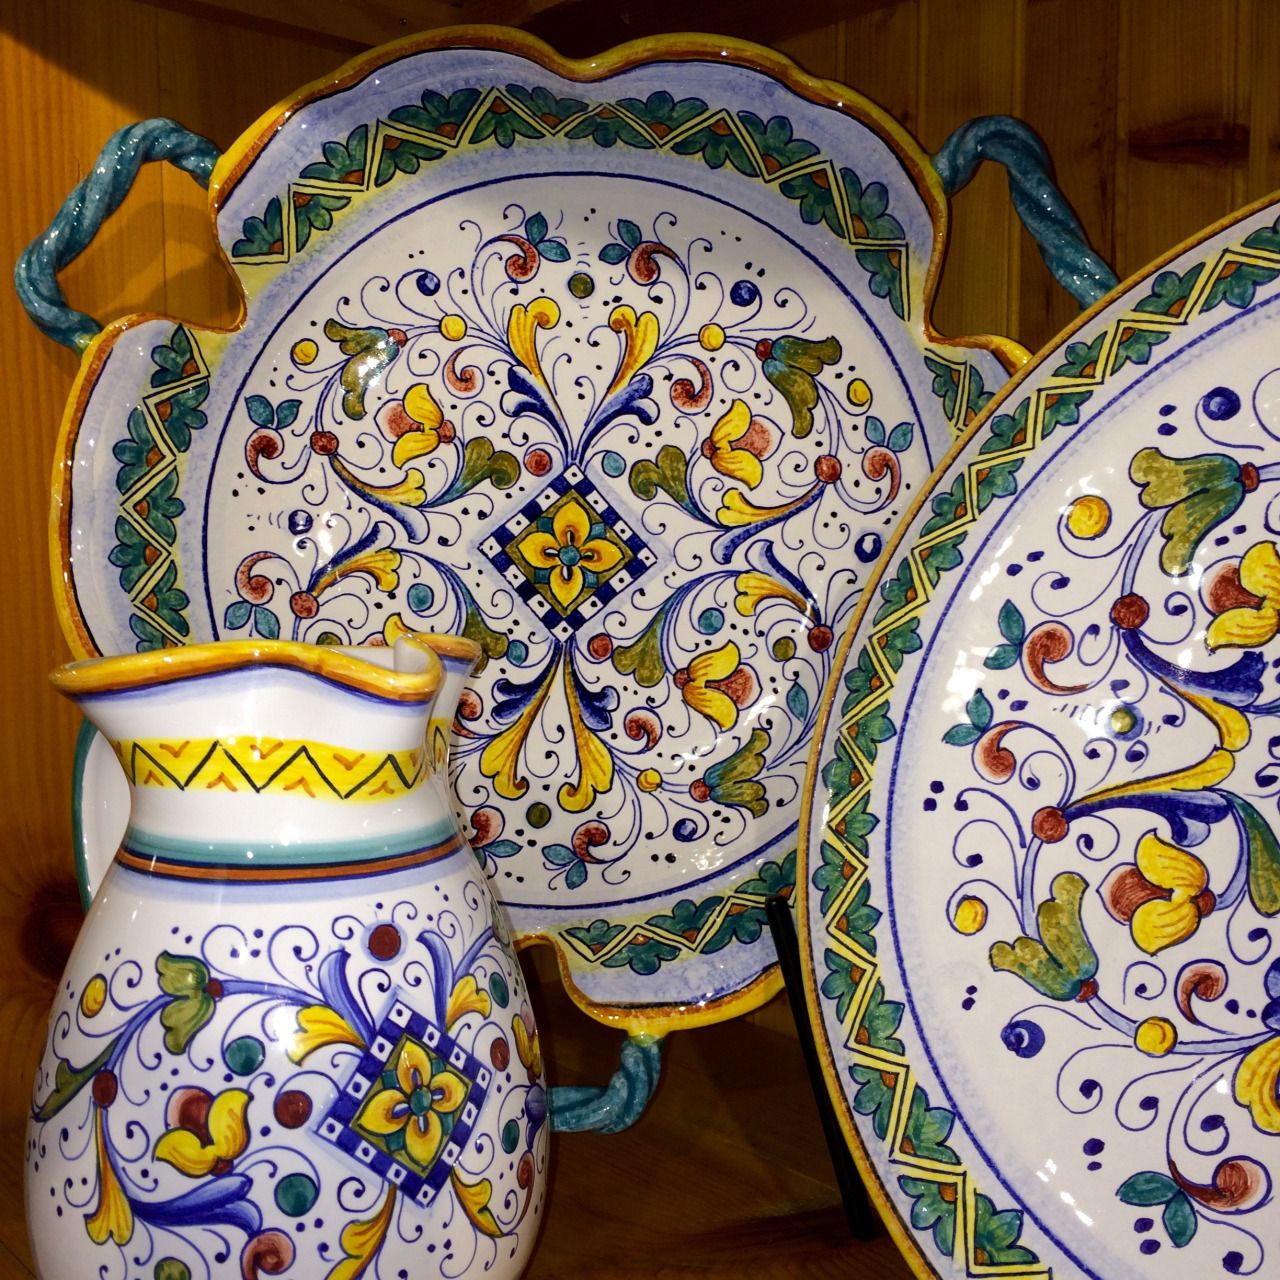 Image result for dinnerware patterns & Image result for dinnerware patterns | China Plates "|1280|1280|?|en|2|323fa724bd53849f5c403e875e8785a5|False|UNLIKELY|0.32821667194366455